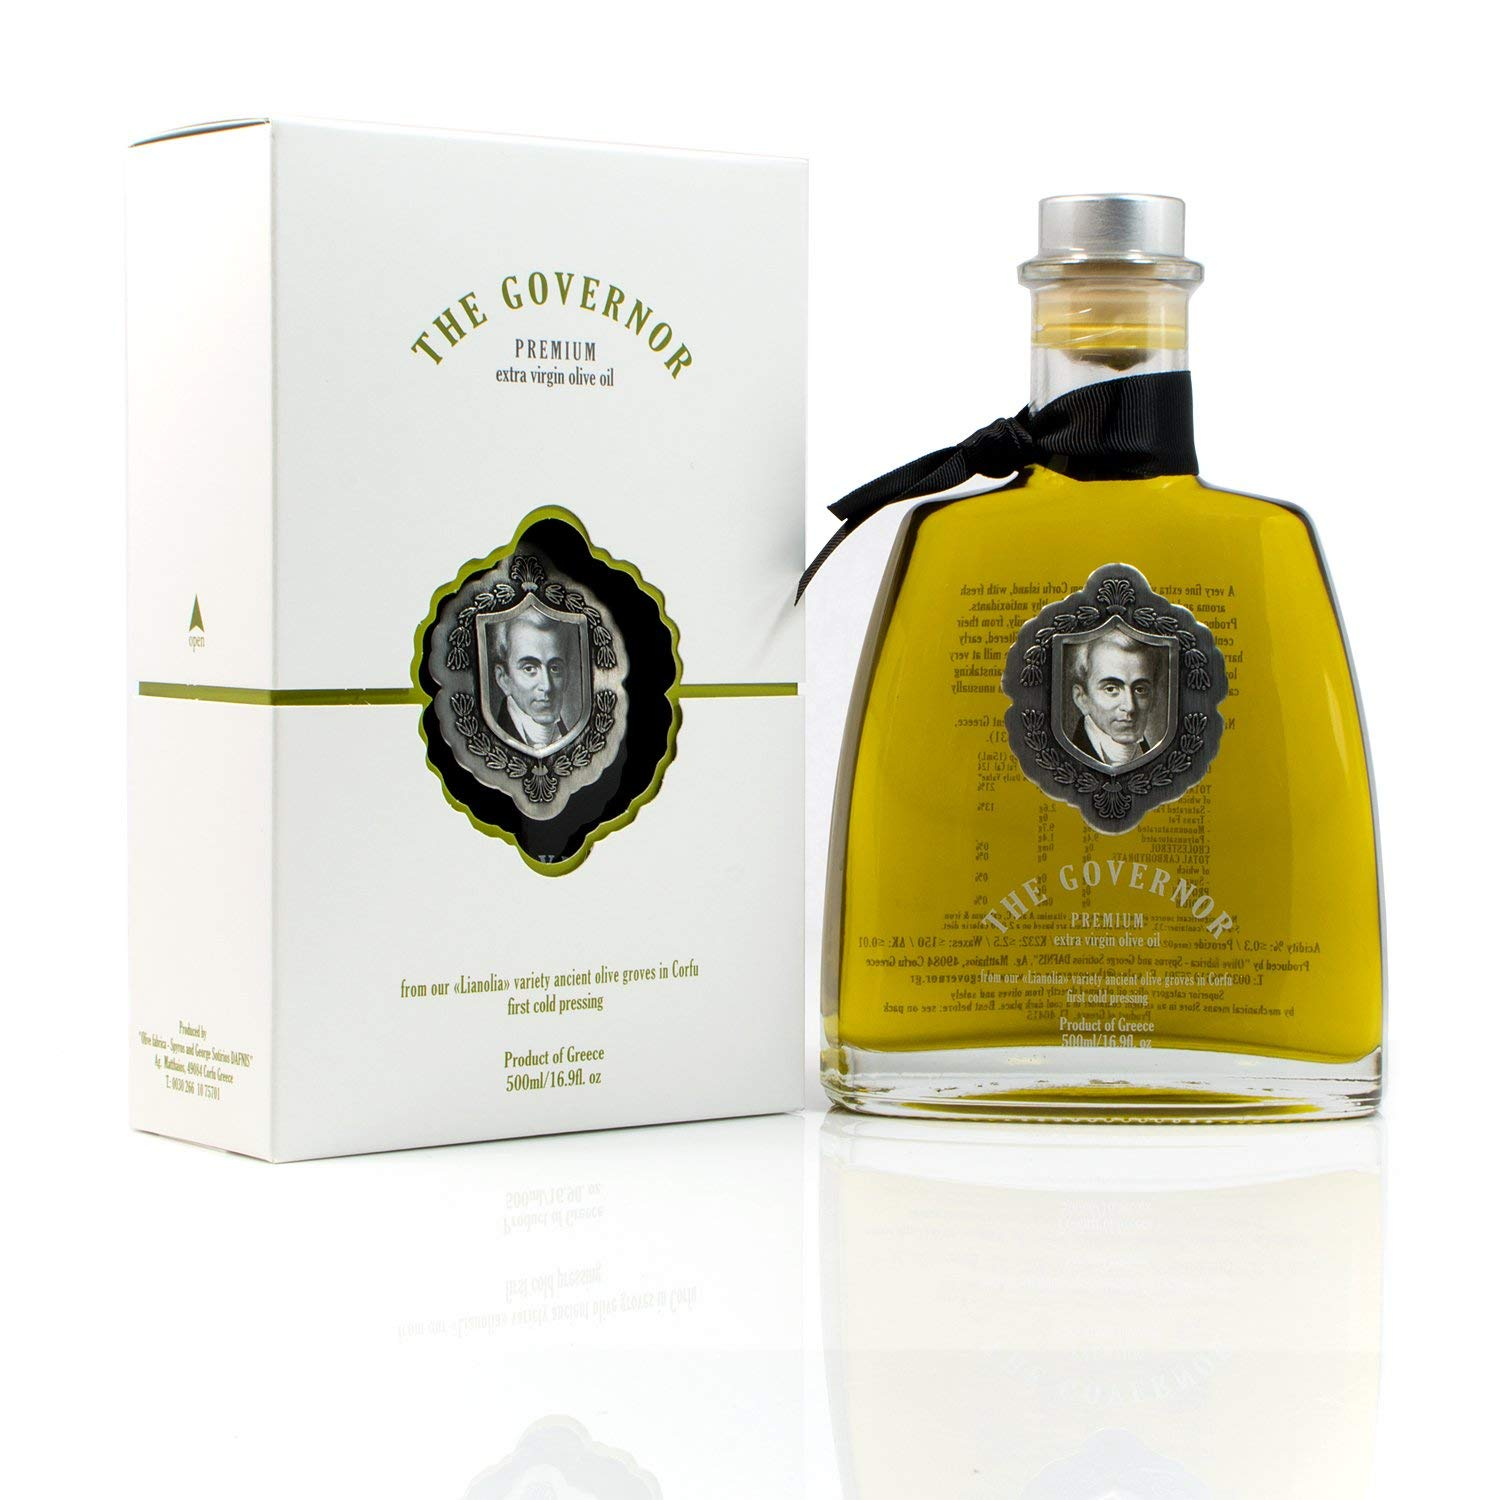 The Governor Premium Extra Virgin Olive Oil - Unfiltered, Cold-Pressed, Single Origin Lianolia - Peppery, Robust, Floral, Fruity Notes - Rich in Natural Polyphenols, Oleocanthal, Antioxidants, 500ml